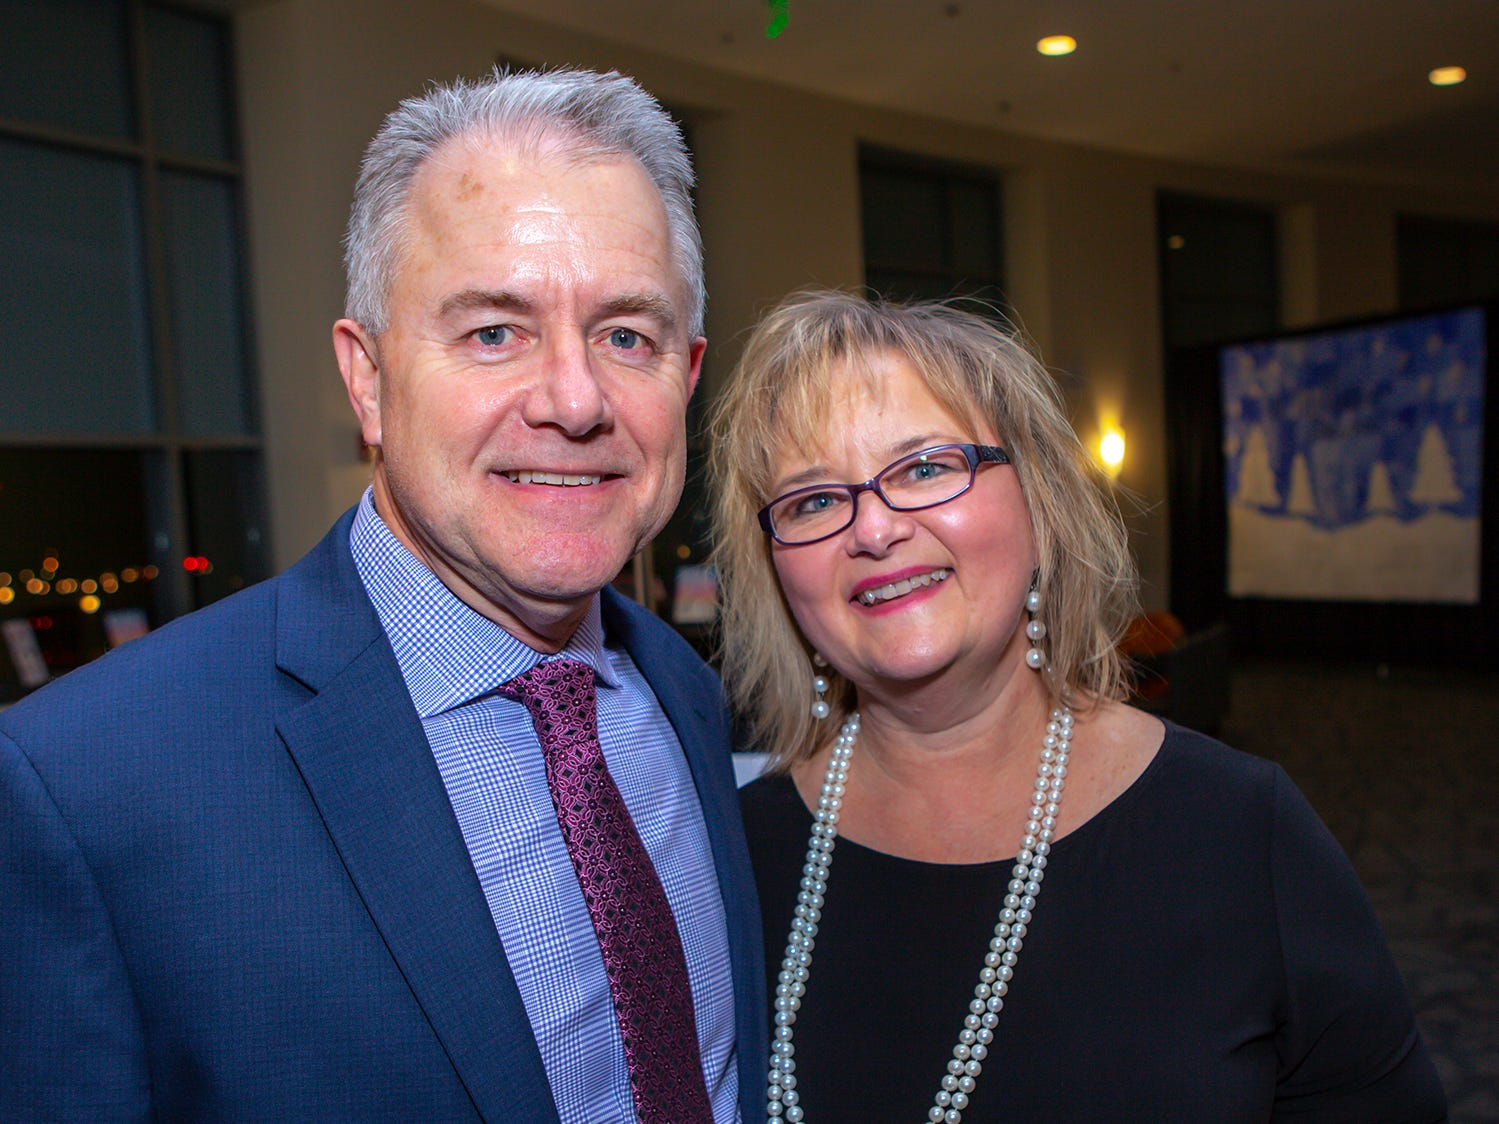 Tim Tipps and Lisa Trail at the 2019 Excellence in Education Gala, hosted by the City Schools Foundation on Friday, Jan. 25, 2019 at Stones River Country Club in Murfreesboro.